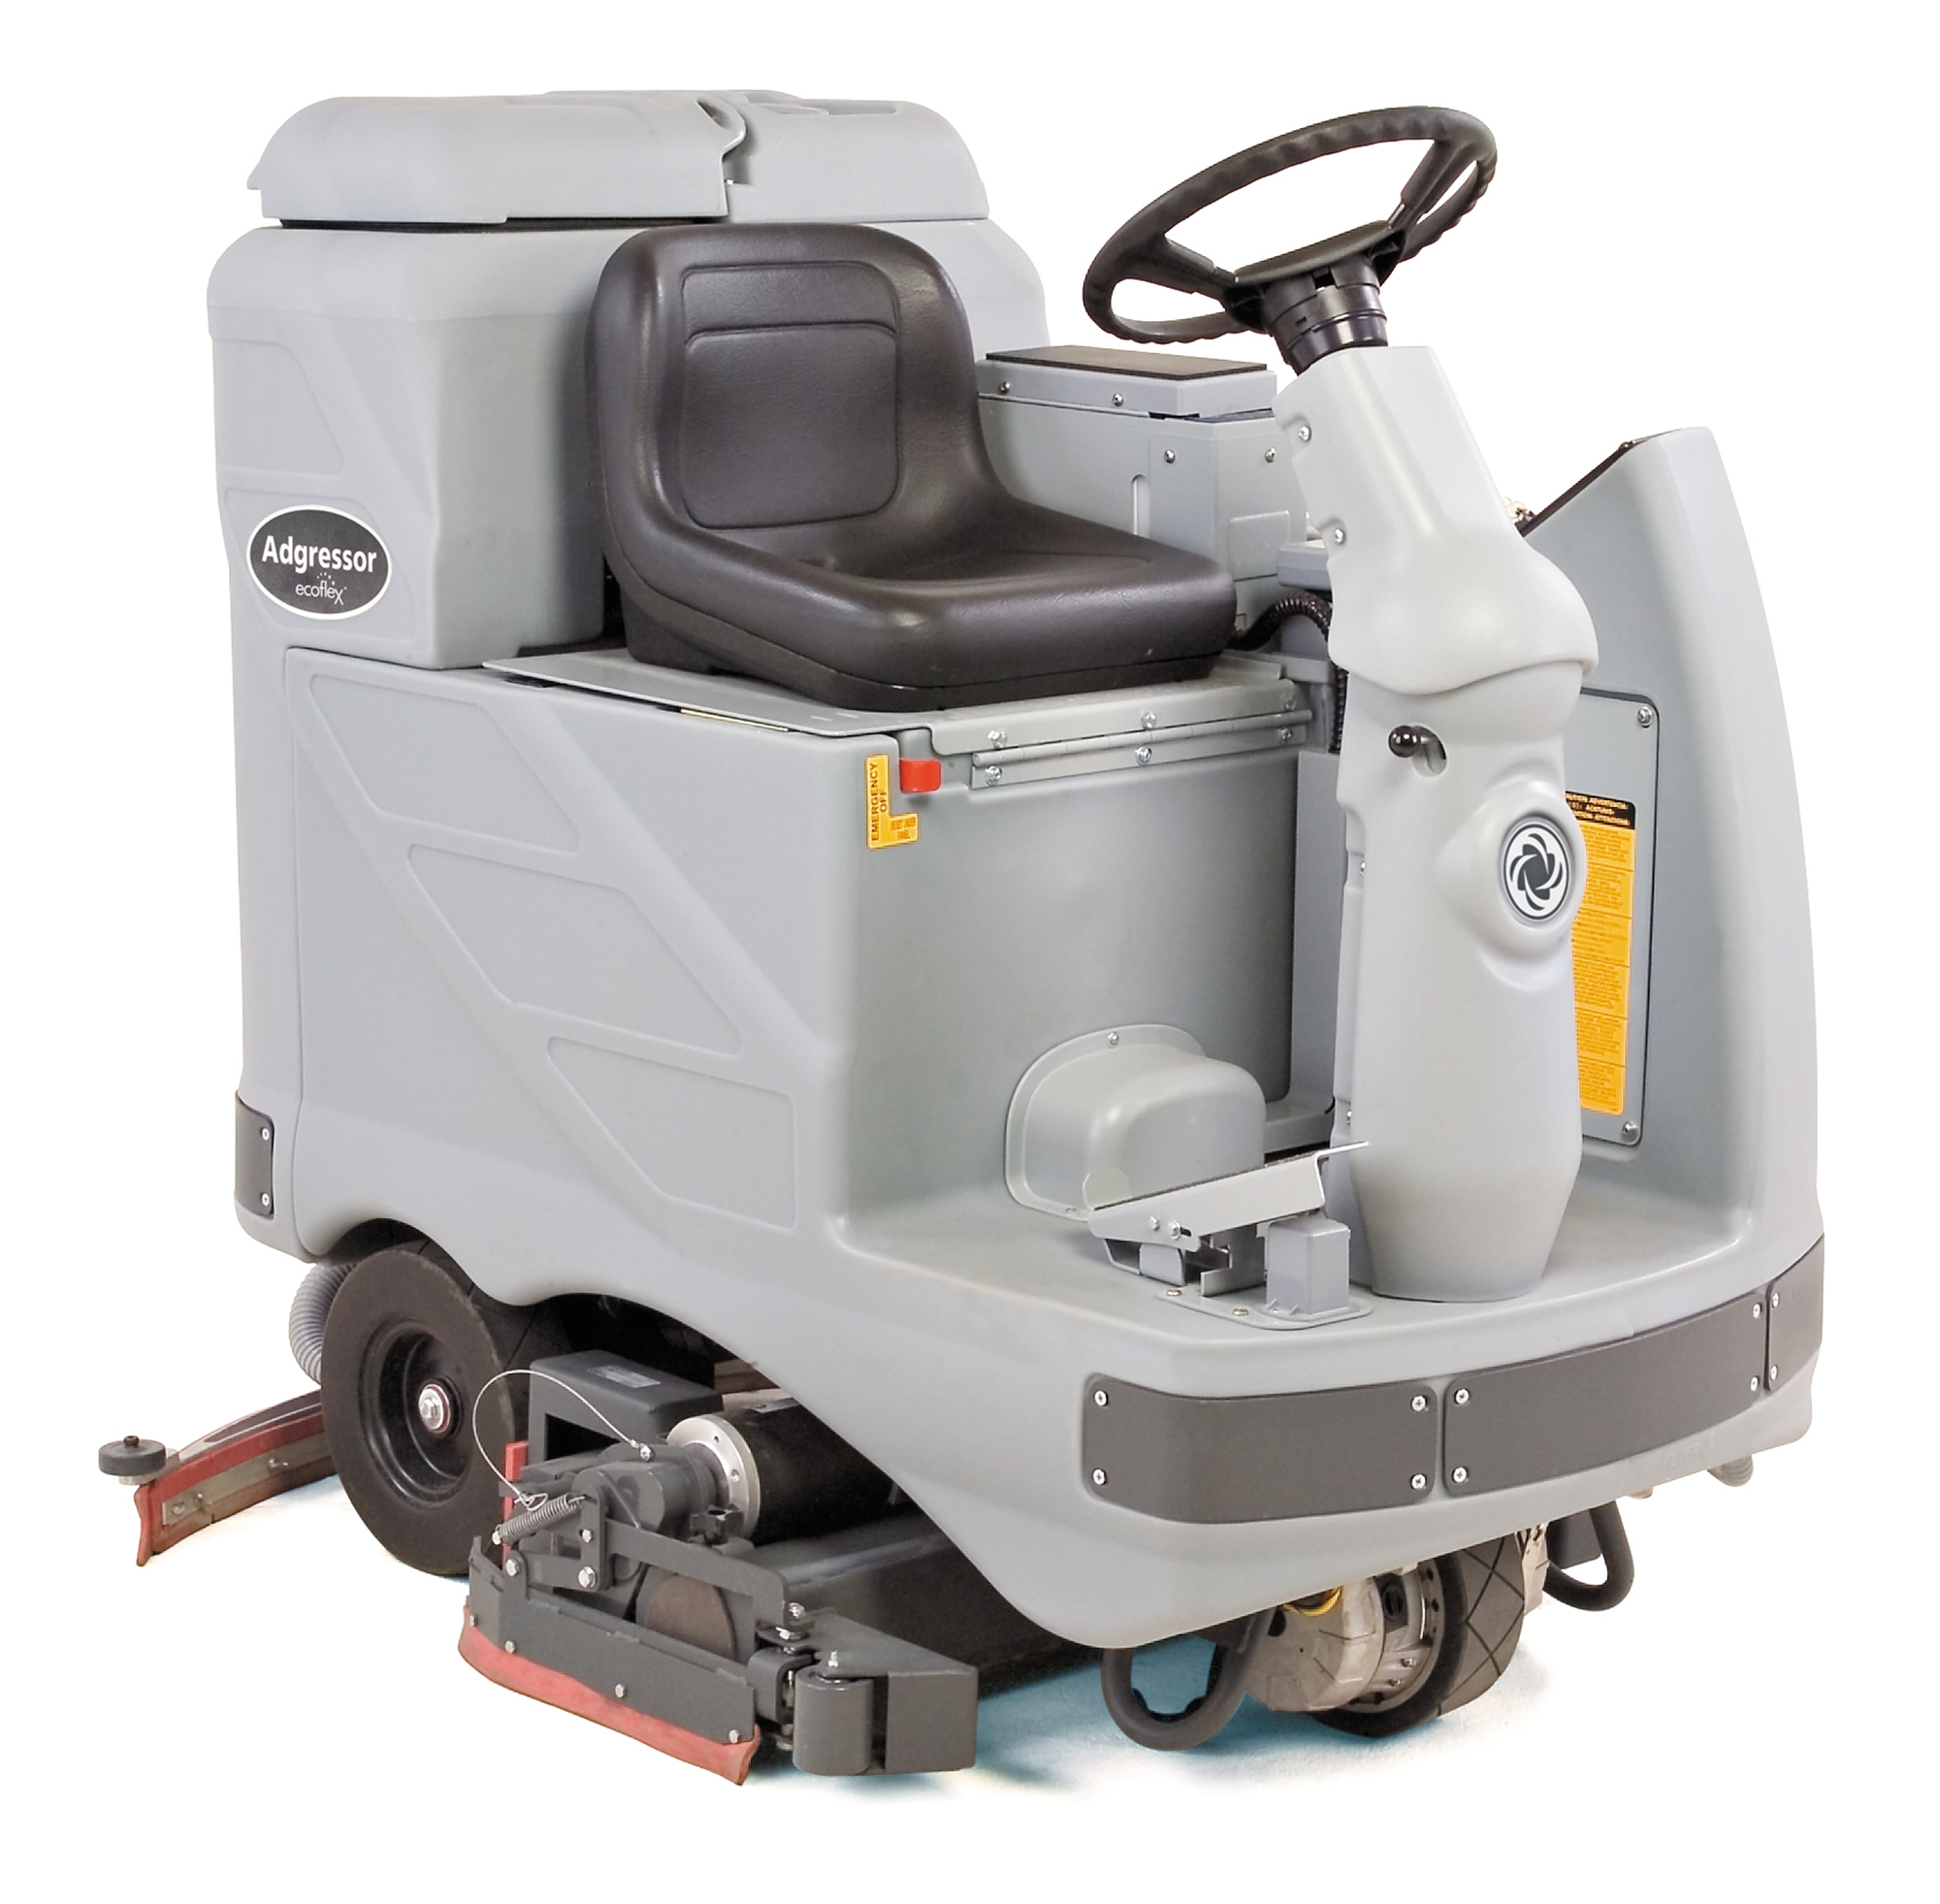 Product, Floor Cleaning, Scrubbers, Rider Scrubbers, Nilfisk, ADGRESSOR X3820D 420AH SC